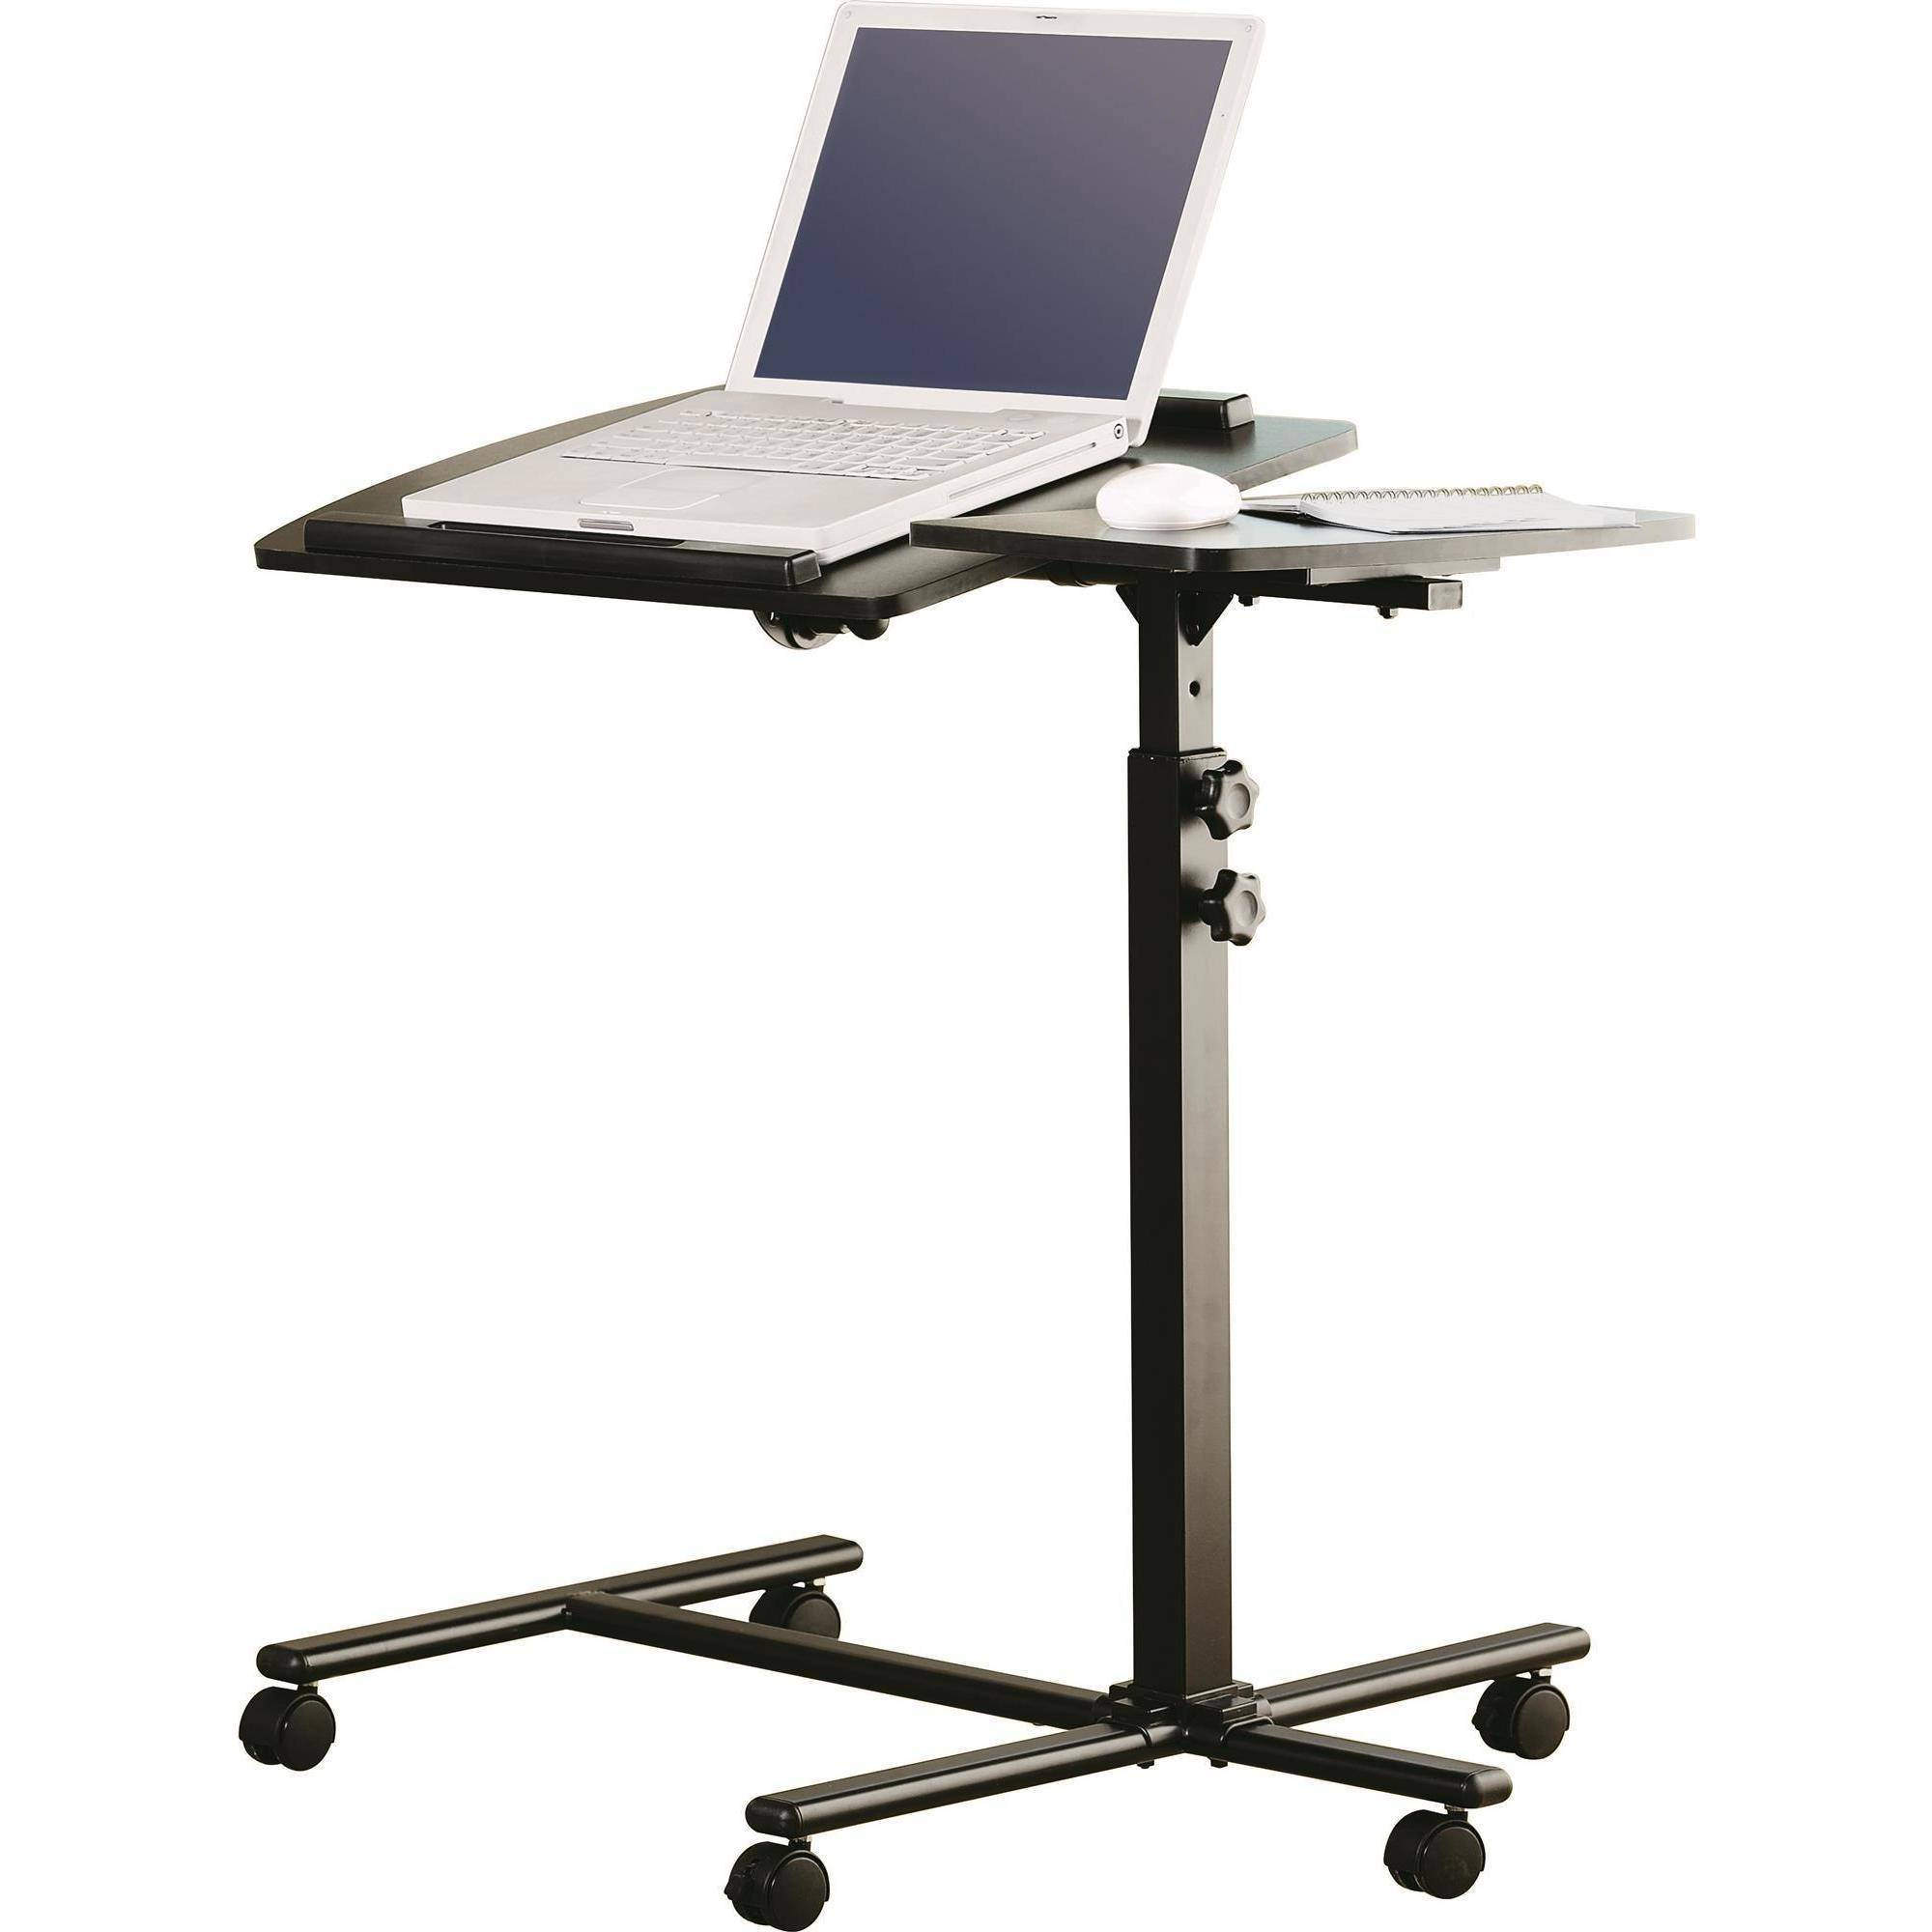 notebook desk stand itm portable laptop glass tray home computer furniture lap table